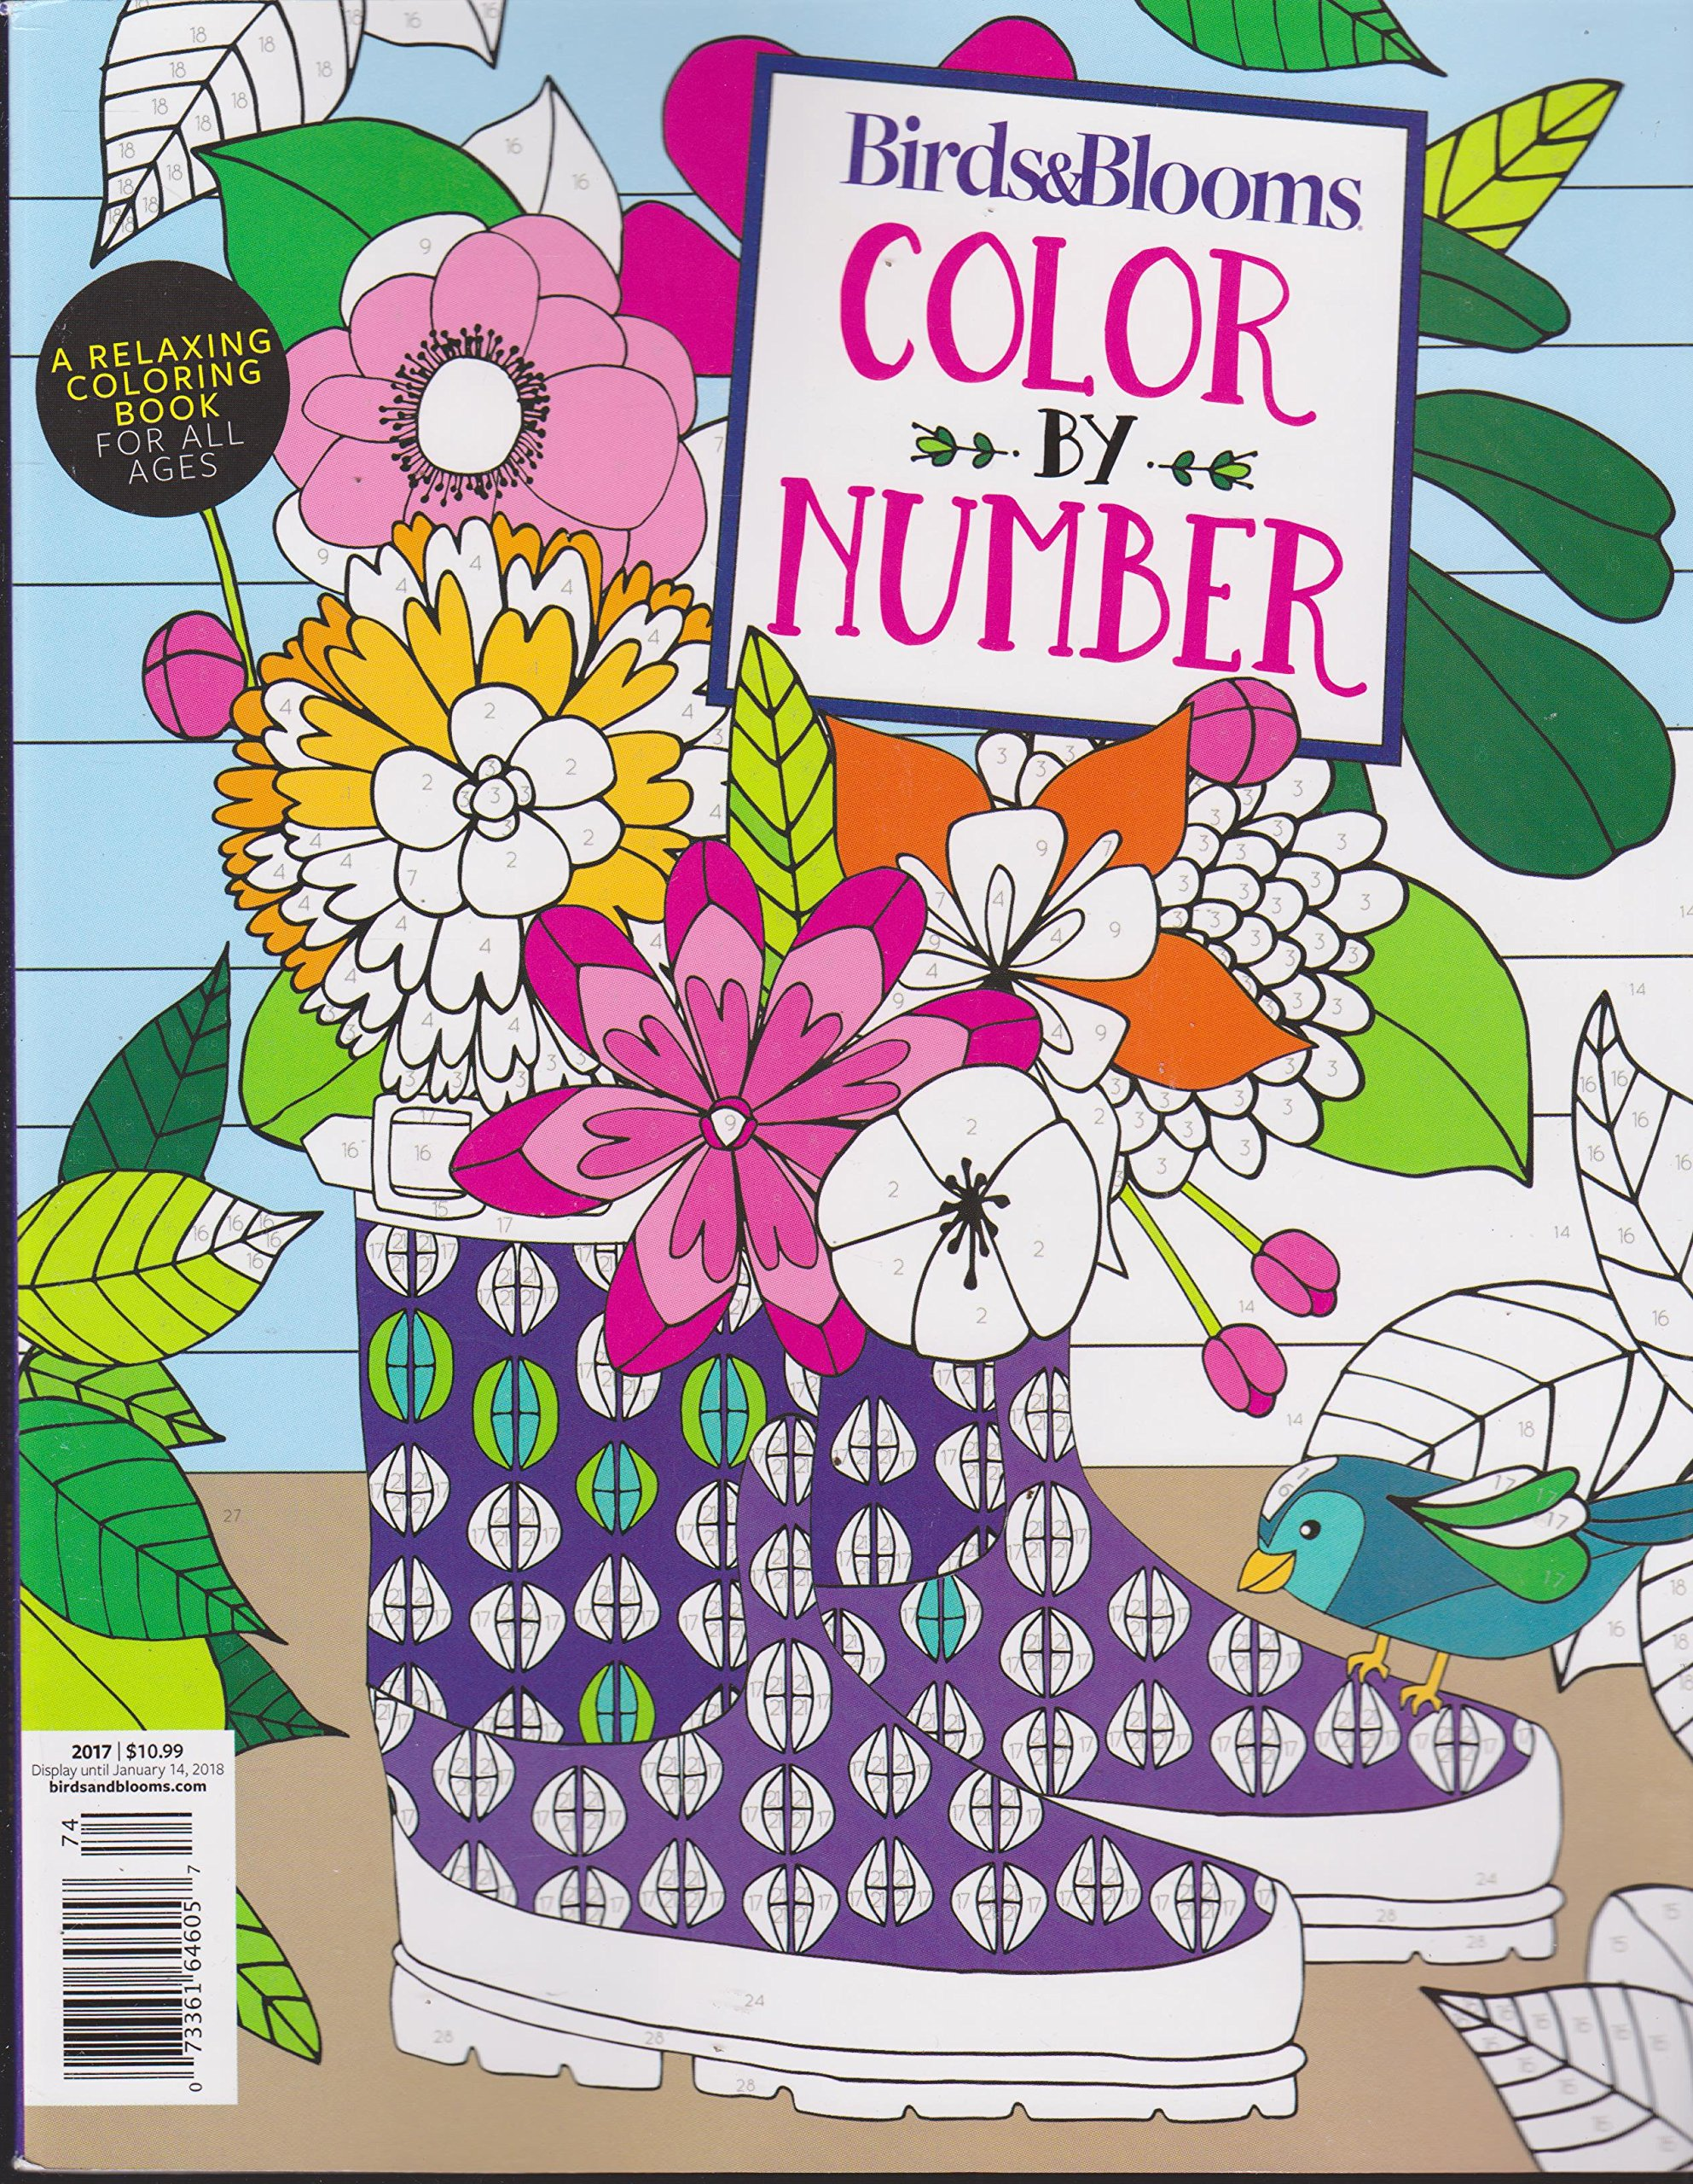 Birds Blooms Color By Number 2017 Relaxing Coloring Book Amazon Books